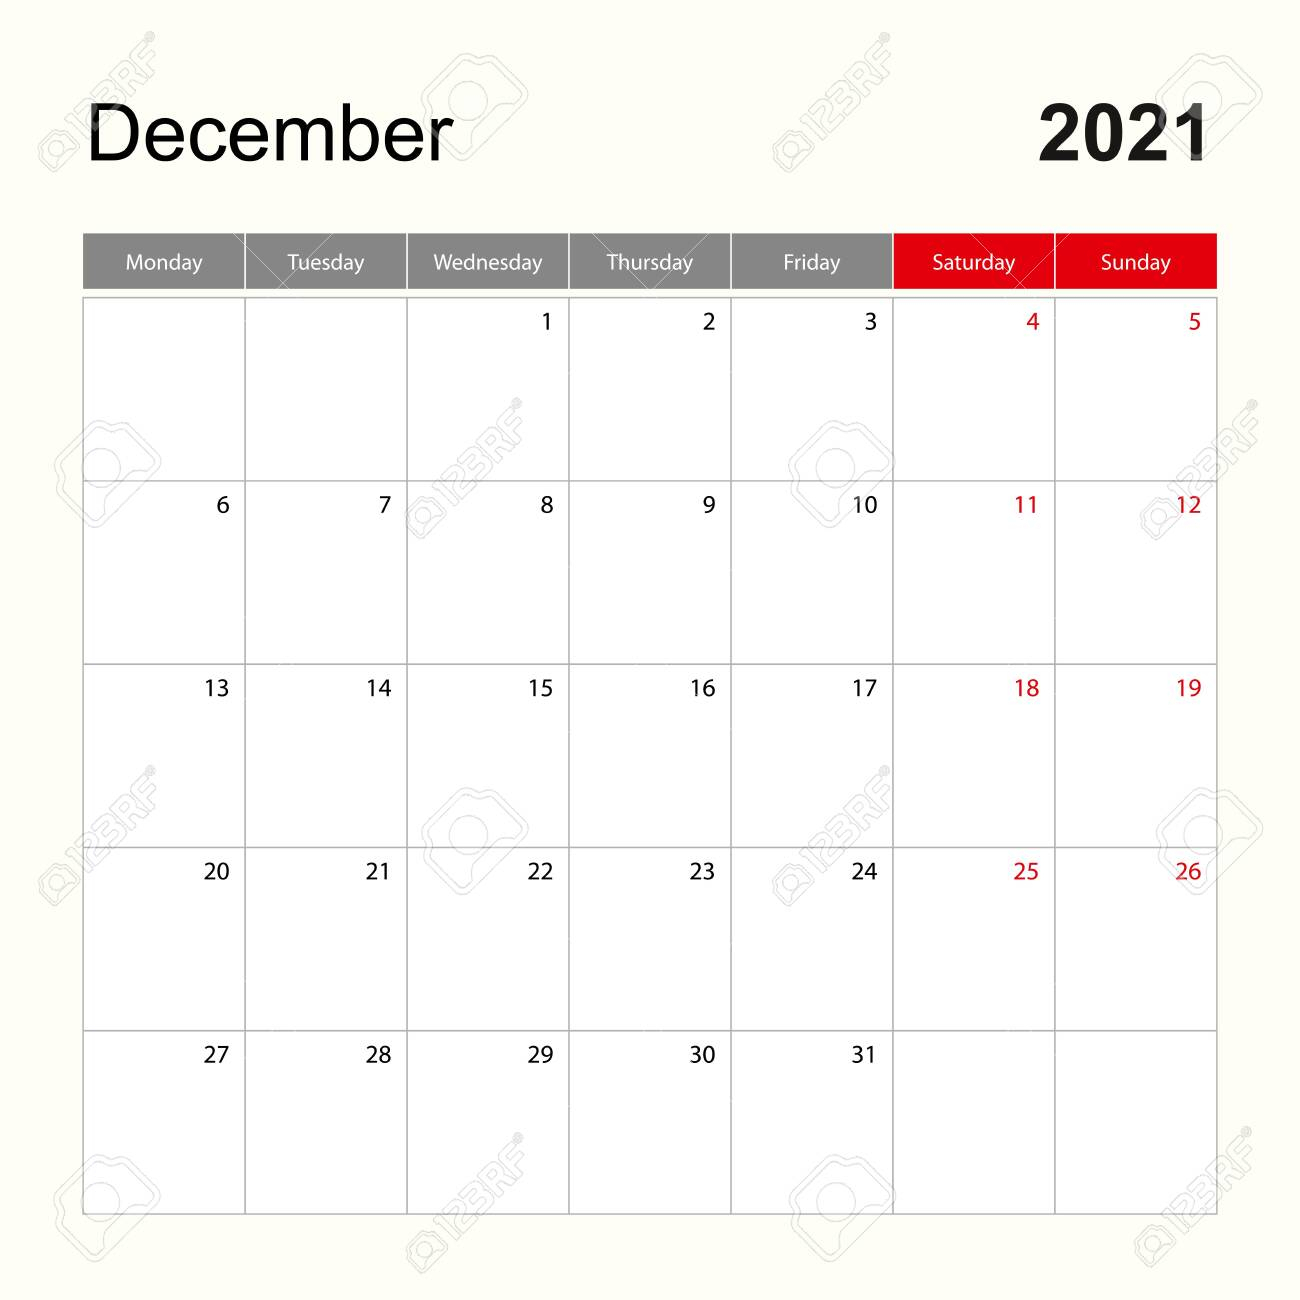 Wall Calendar Template For December 2021. Holiday And Event Planner,..